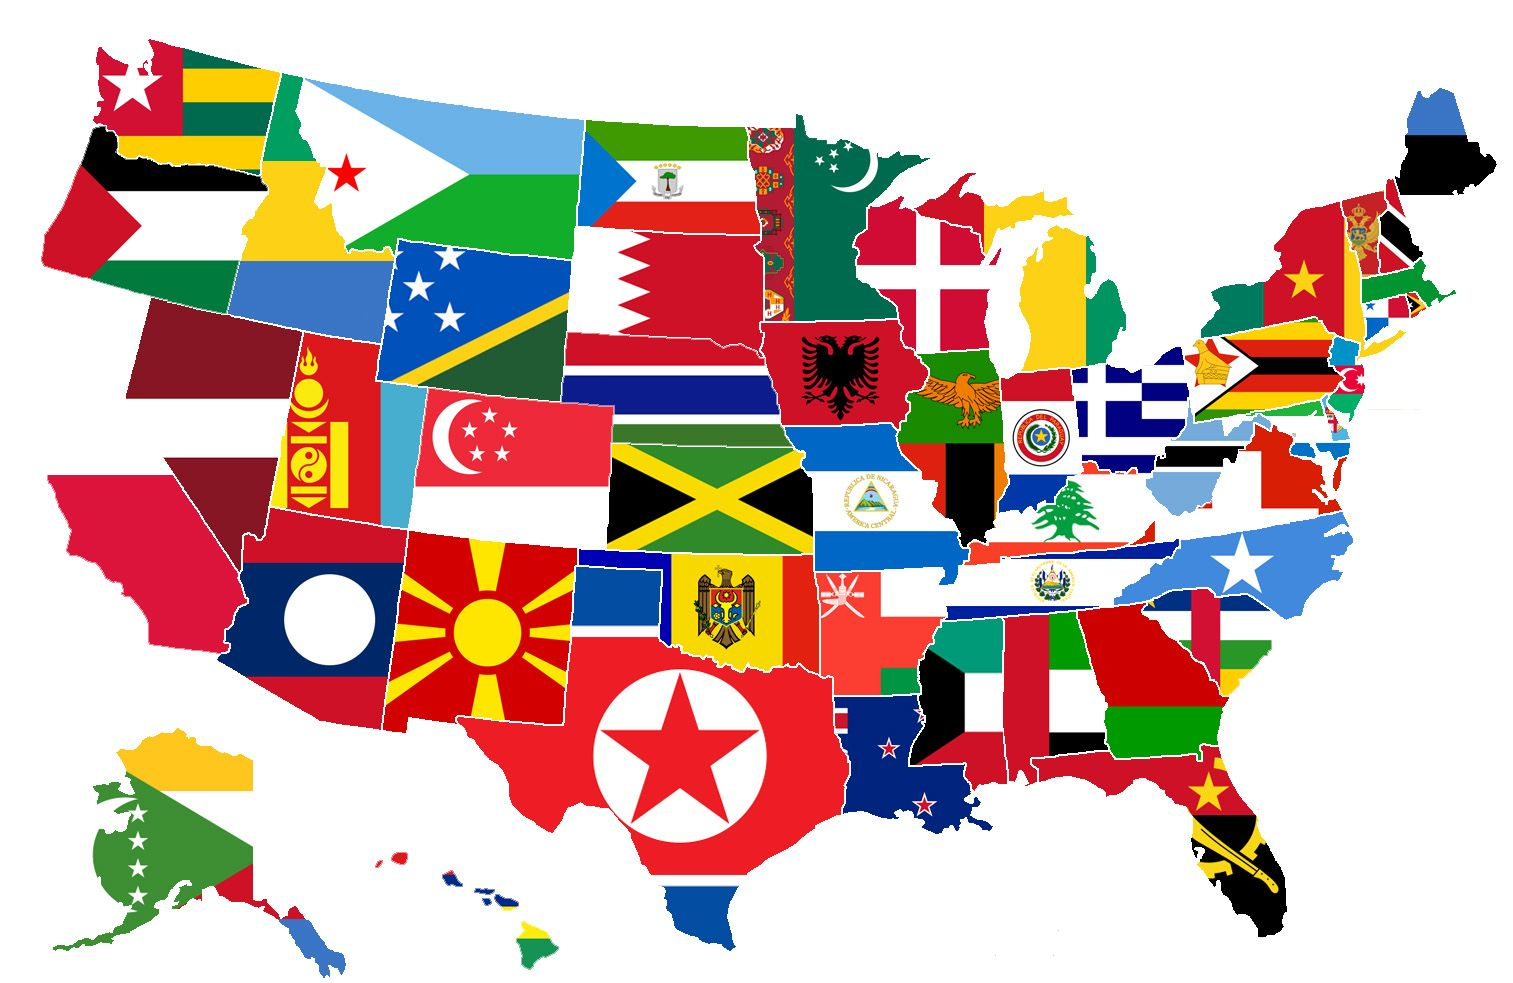 It Shows Each US State Covered By The Flag Of A Country With A - Us map popular redrawn states